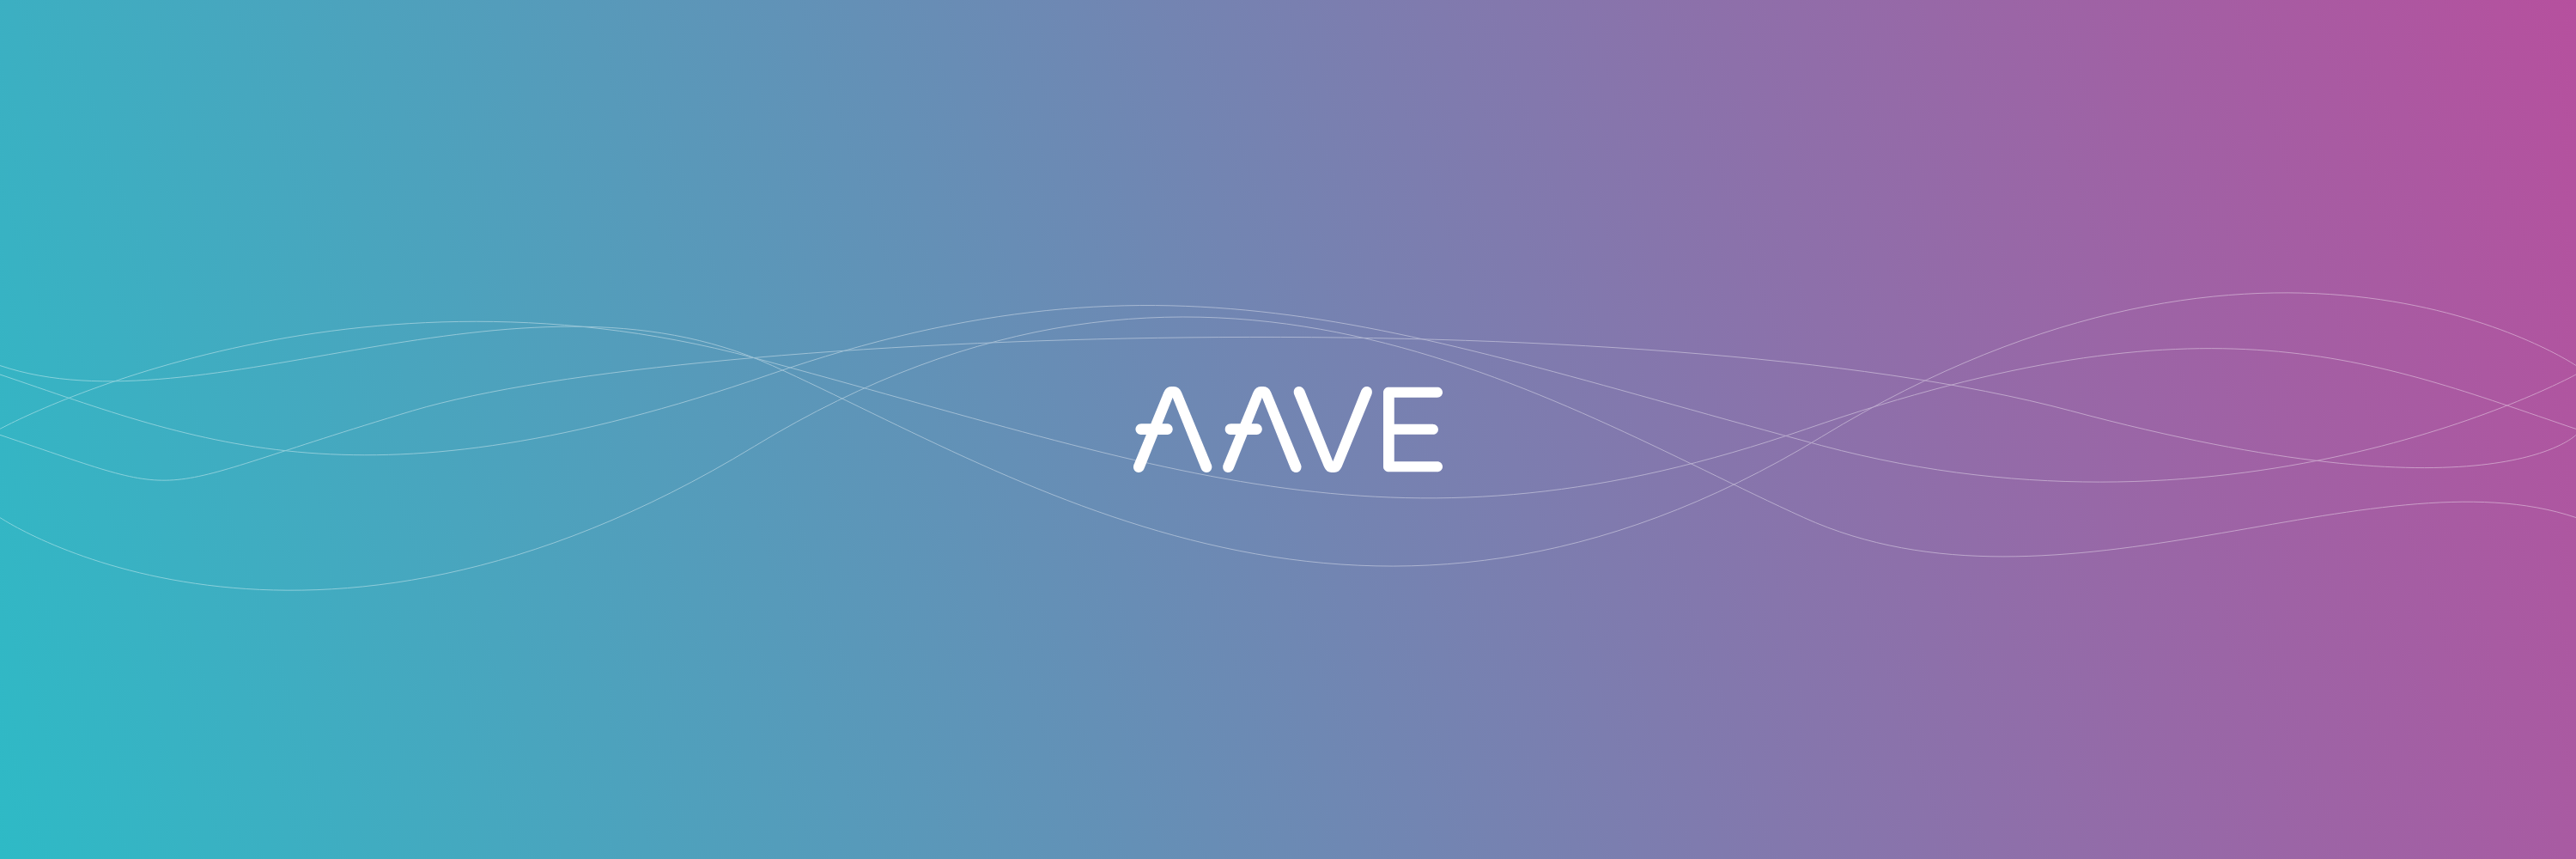 aave cryptocurrency banner on the gradient background